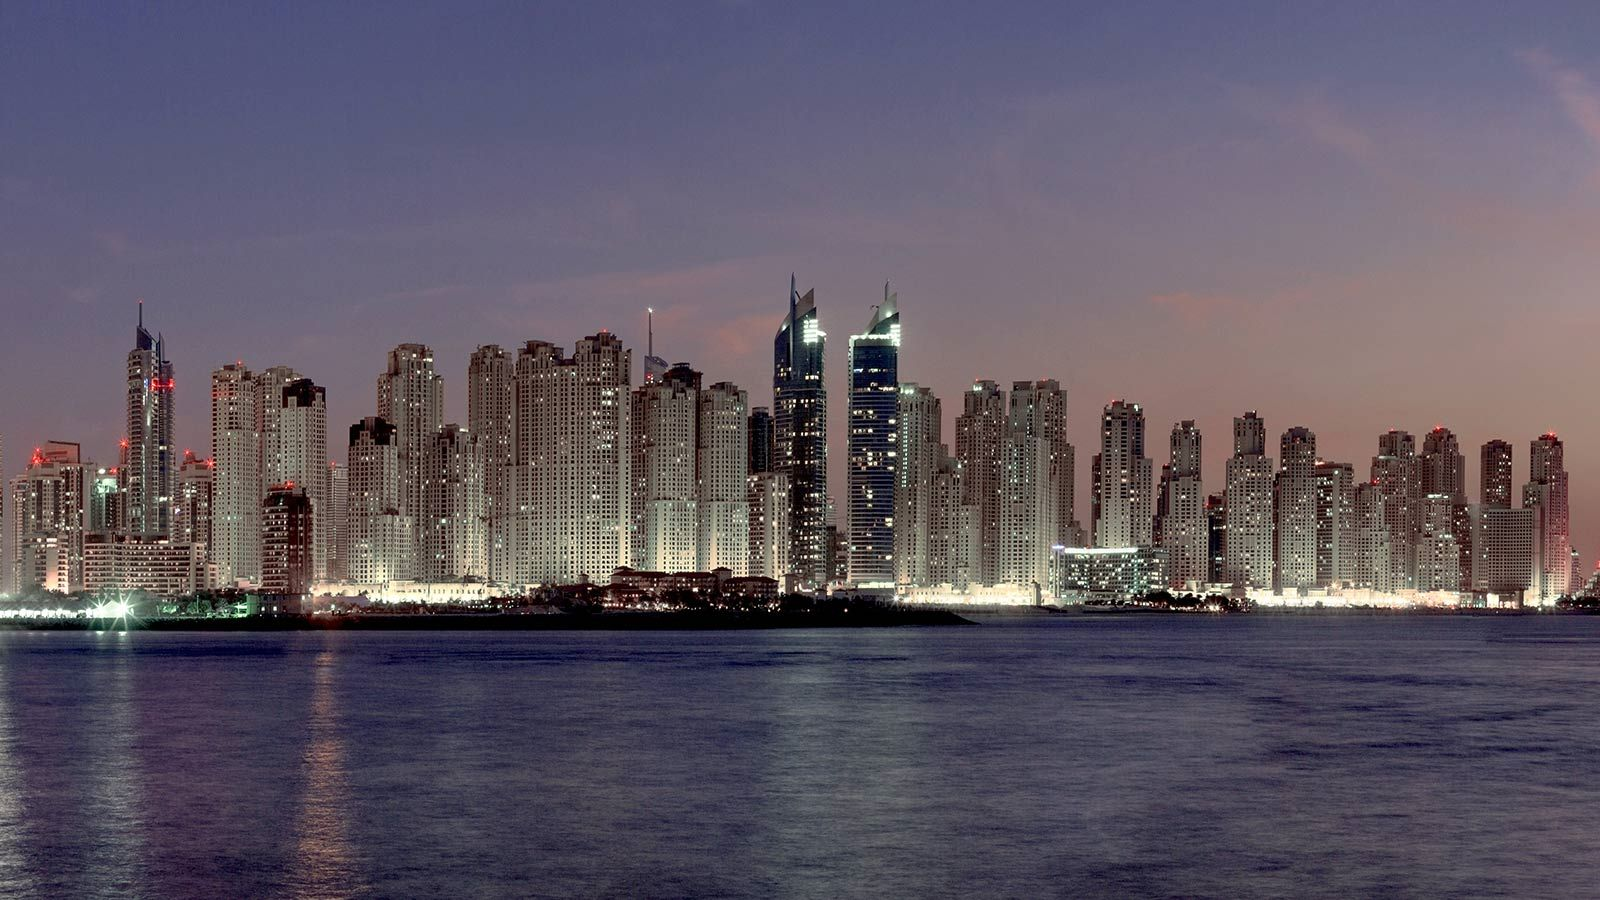 Waterfront of Jumeirah Beach Residence - Mace Group